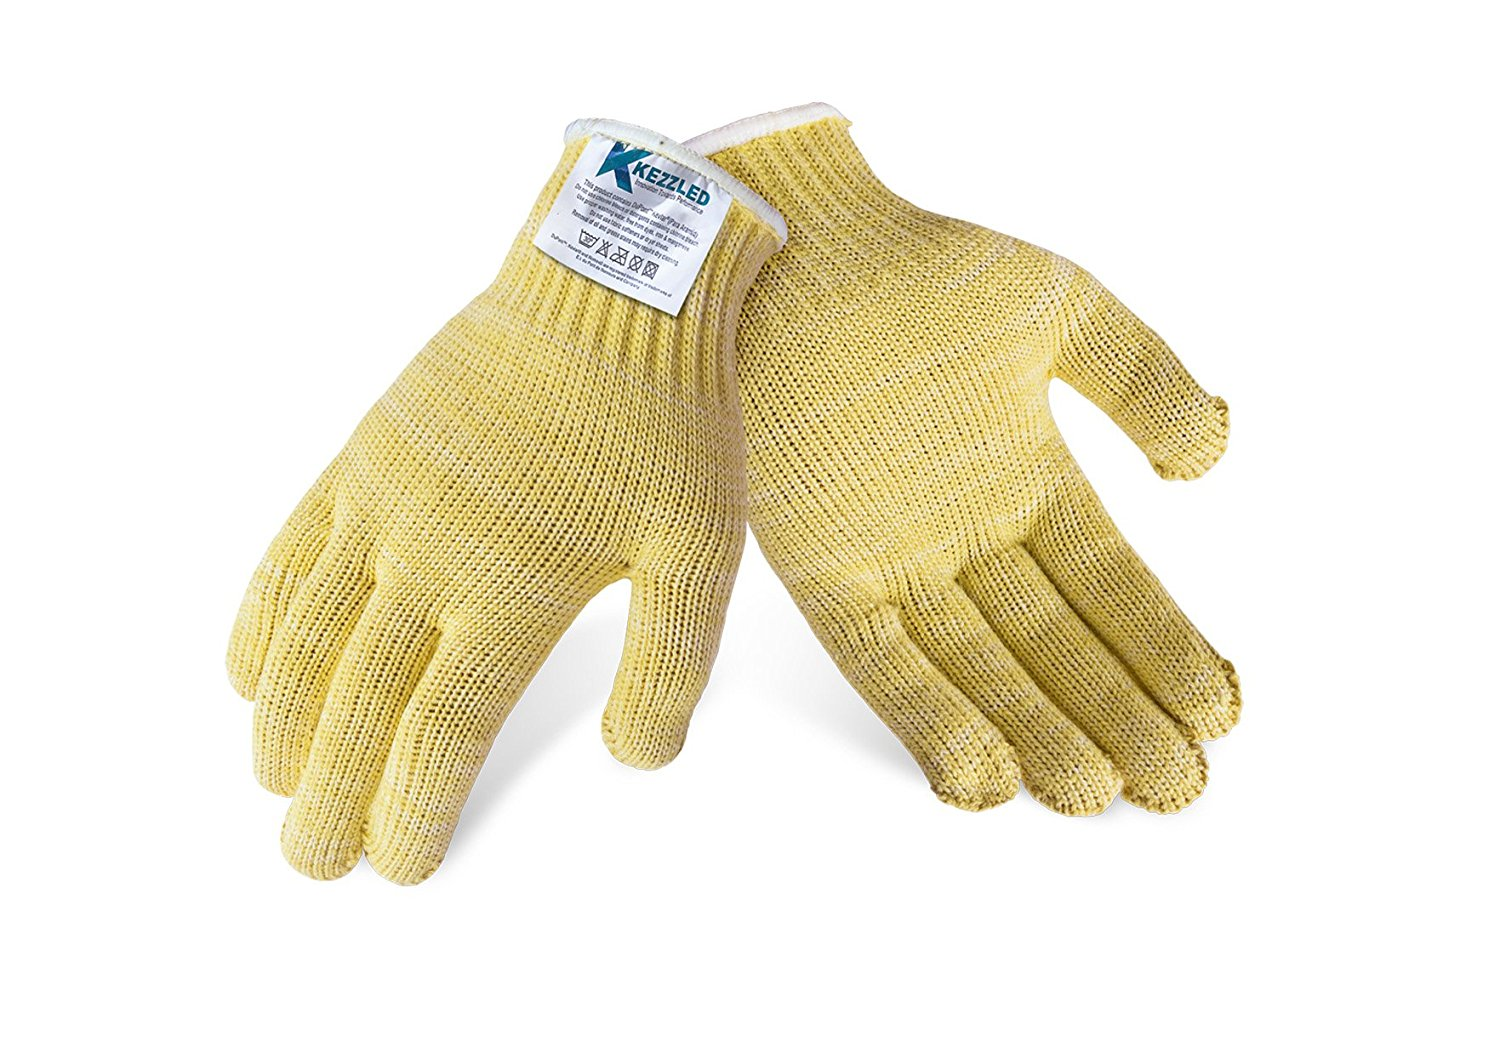 13 Long Sleeve G /& F Products GF Gloves 1683L-12 Exclusive Heat Resistant Oven Gloves 13 Long Sleeve Pack of 12 Large Withstands Extreme Heat